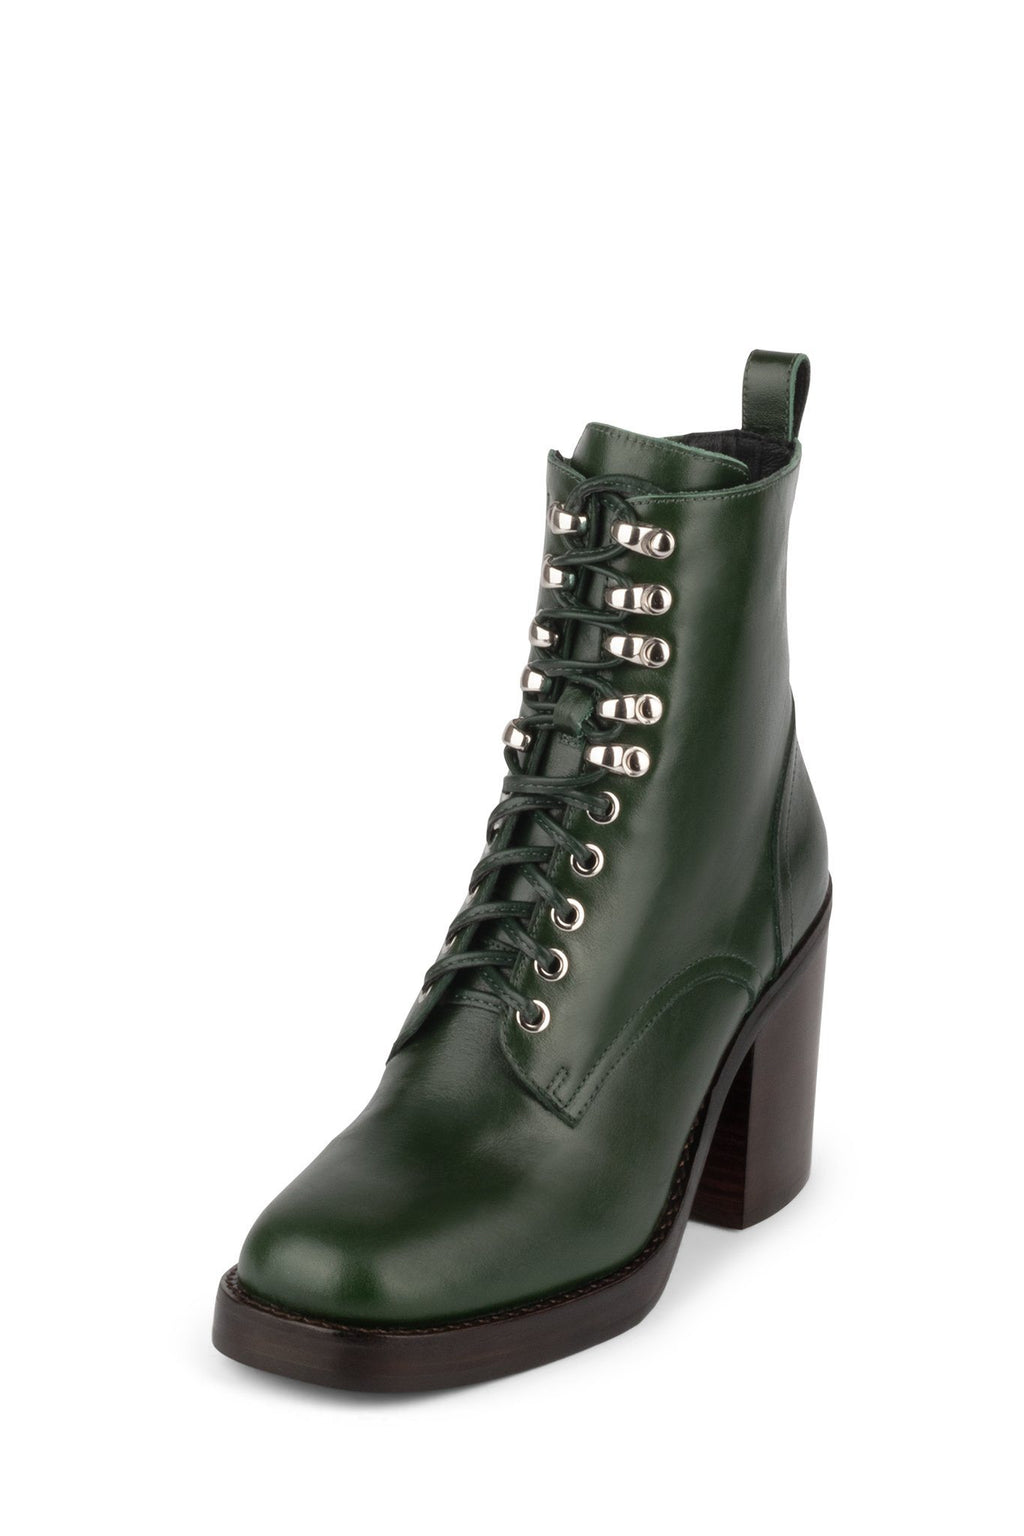 DOTTI Heeled Boot YYH